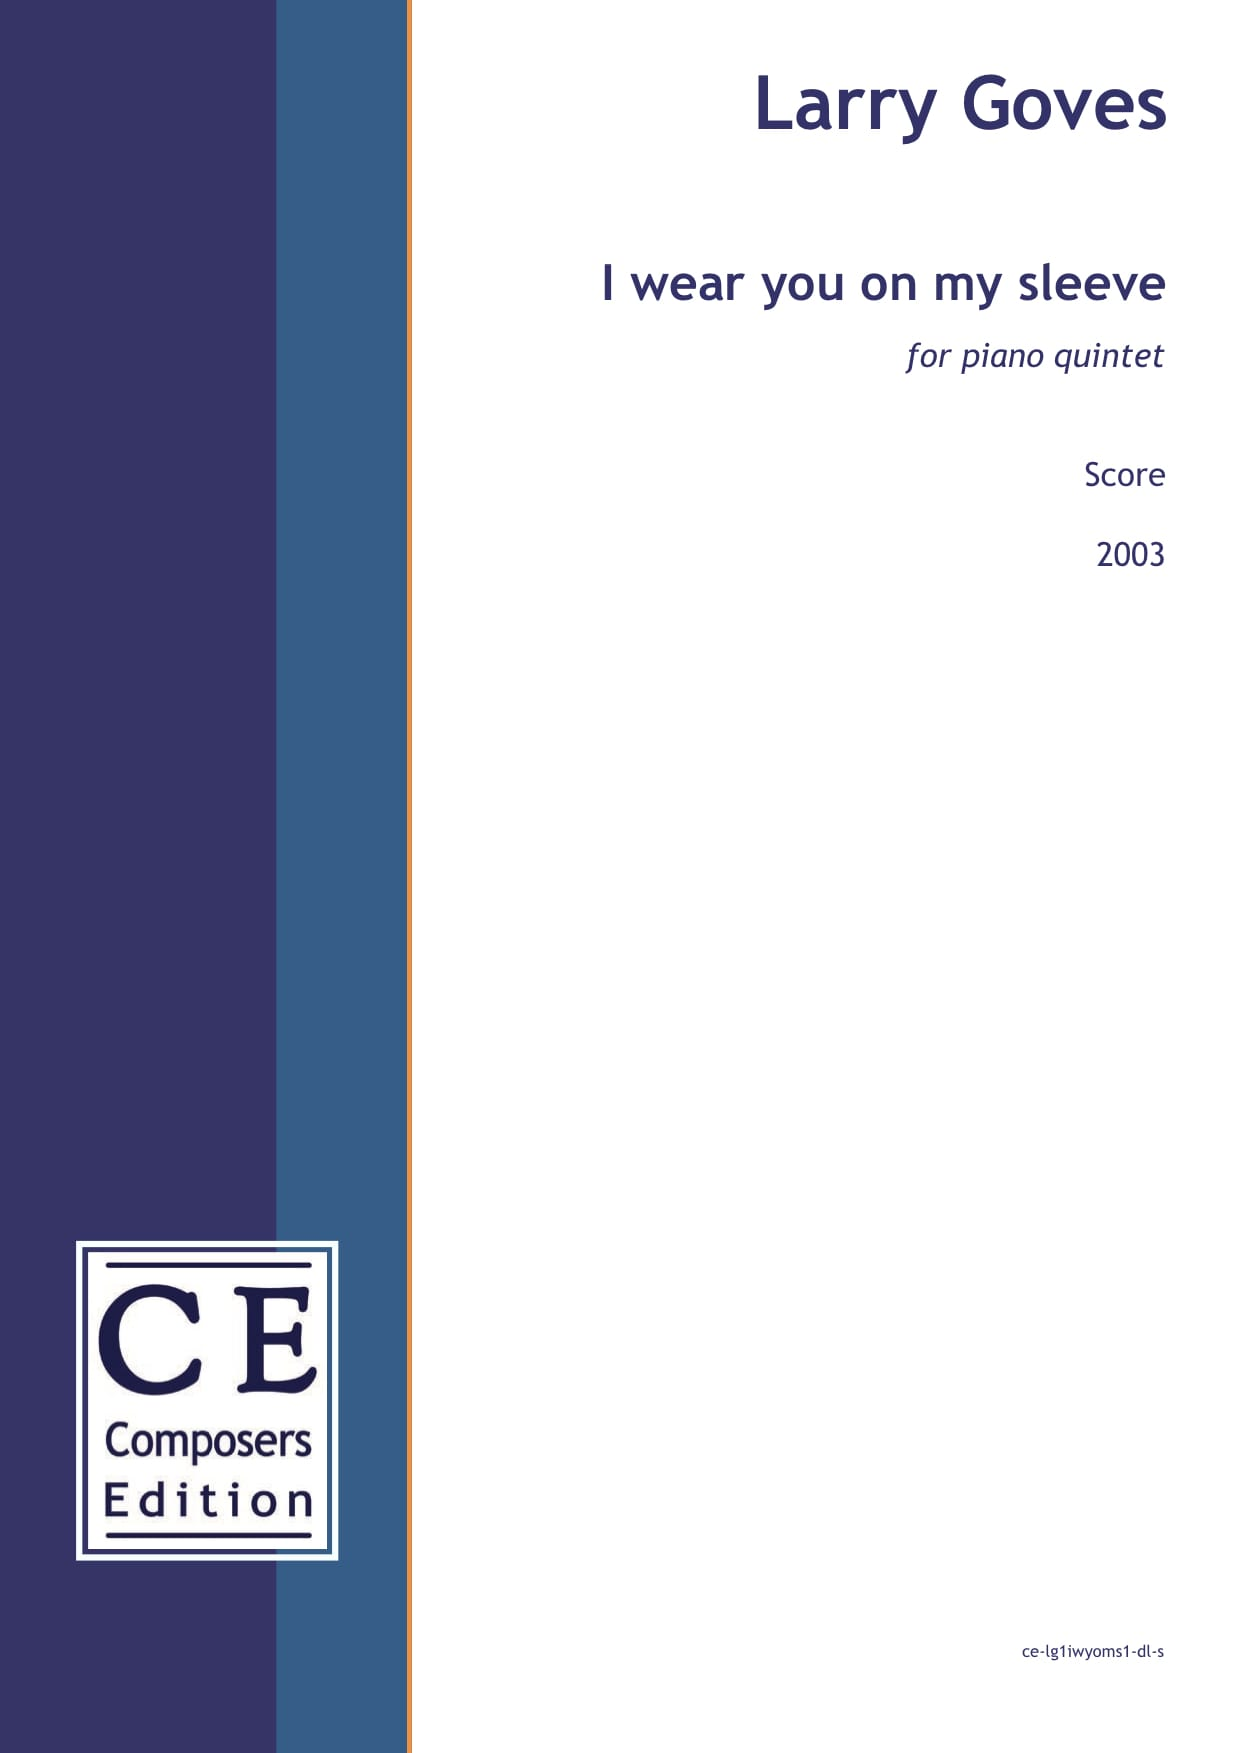 Larry Goves: I wear you on my sleeve for piano quintet